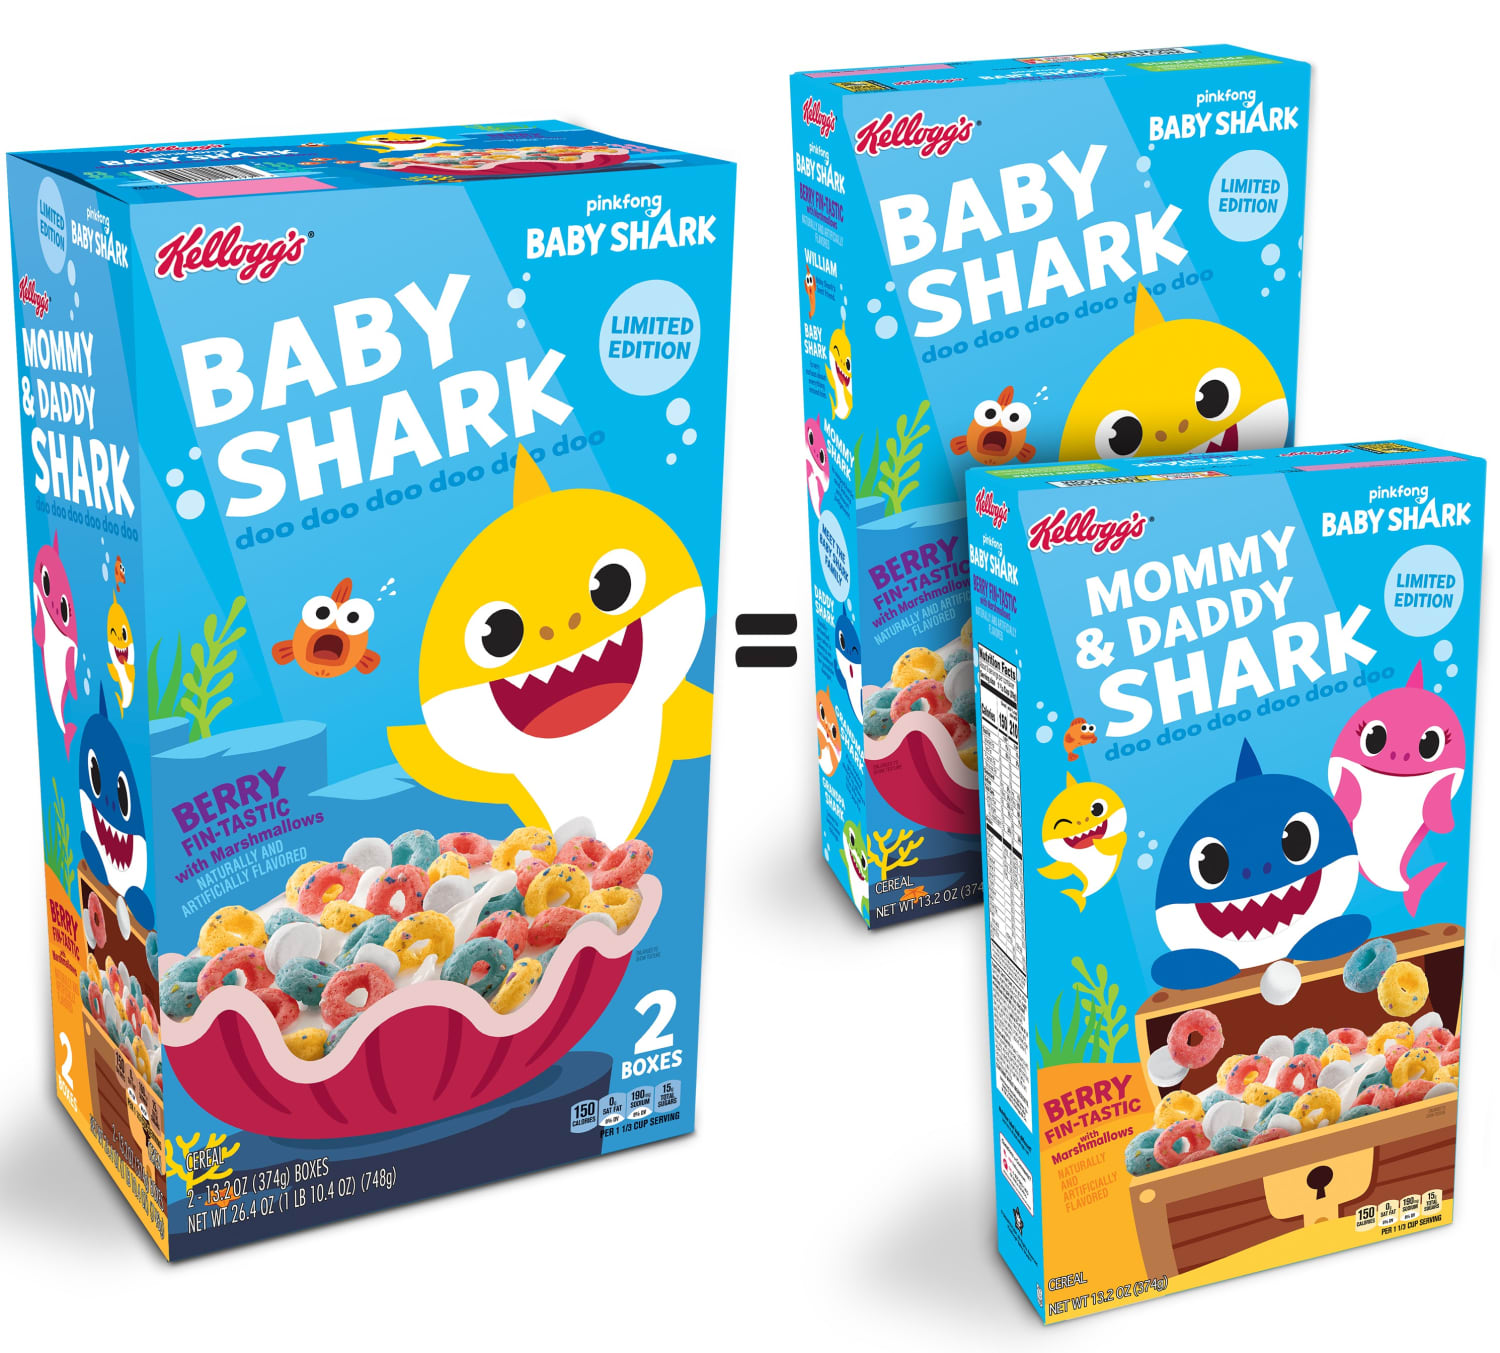 Baby Shark, Now Swimming Down Cereal Aisles